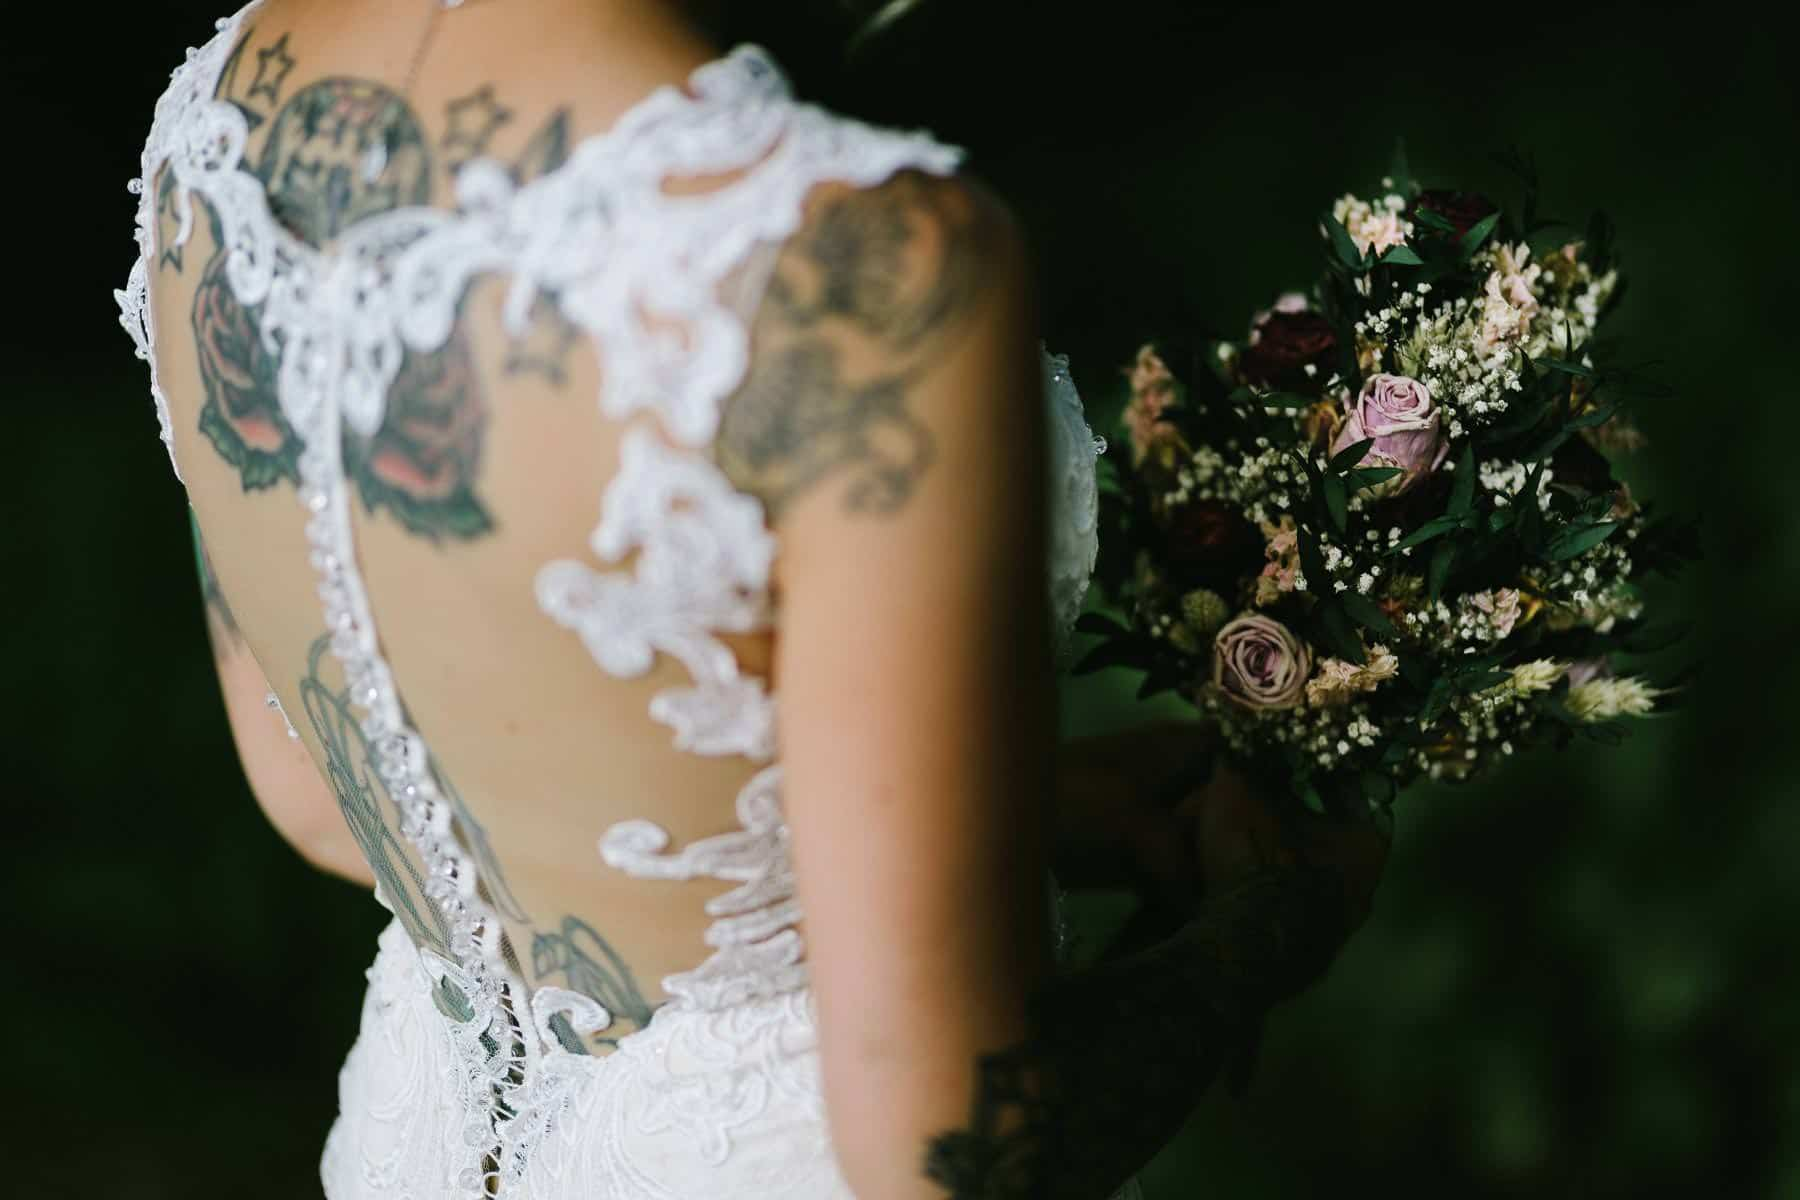 Photo of just the brides tattooed back and her flowers